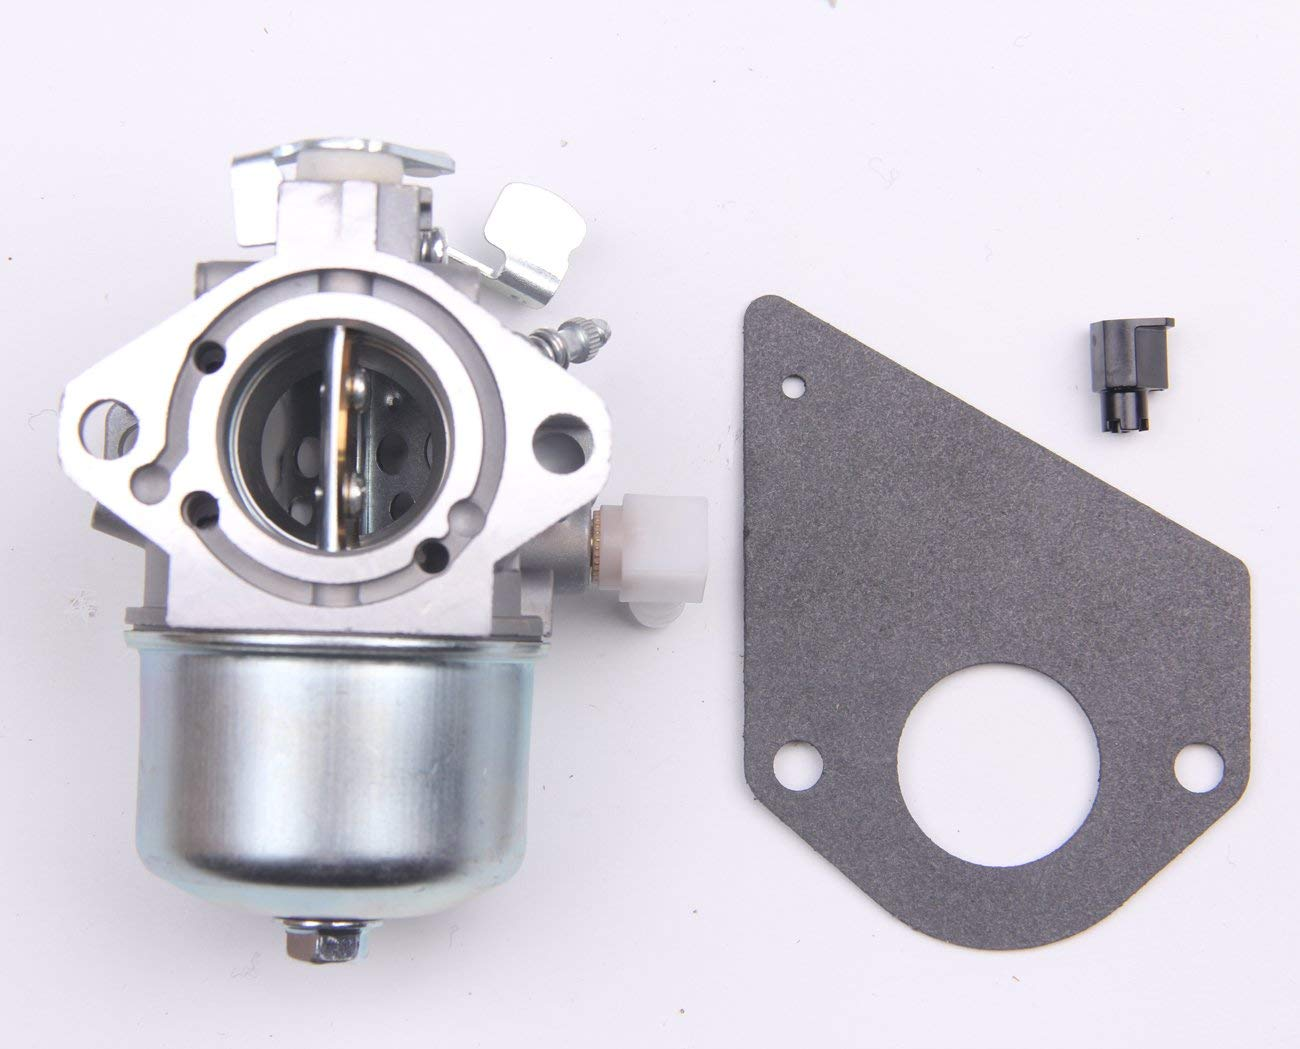 Goodbest New Carburetor for Briggs & Stratton 698171 697594 Fits 283000 284000 286000